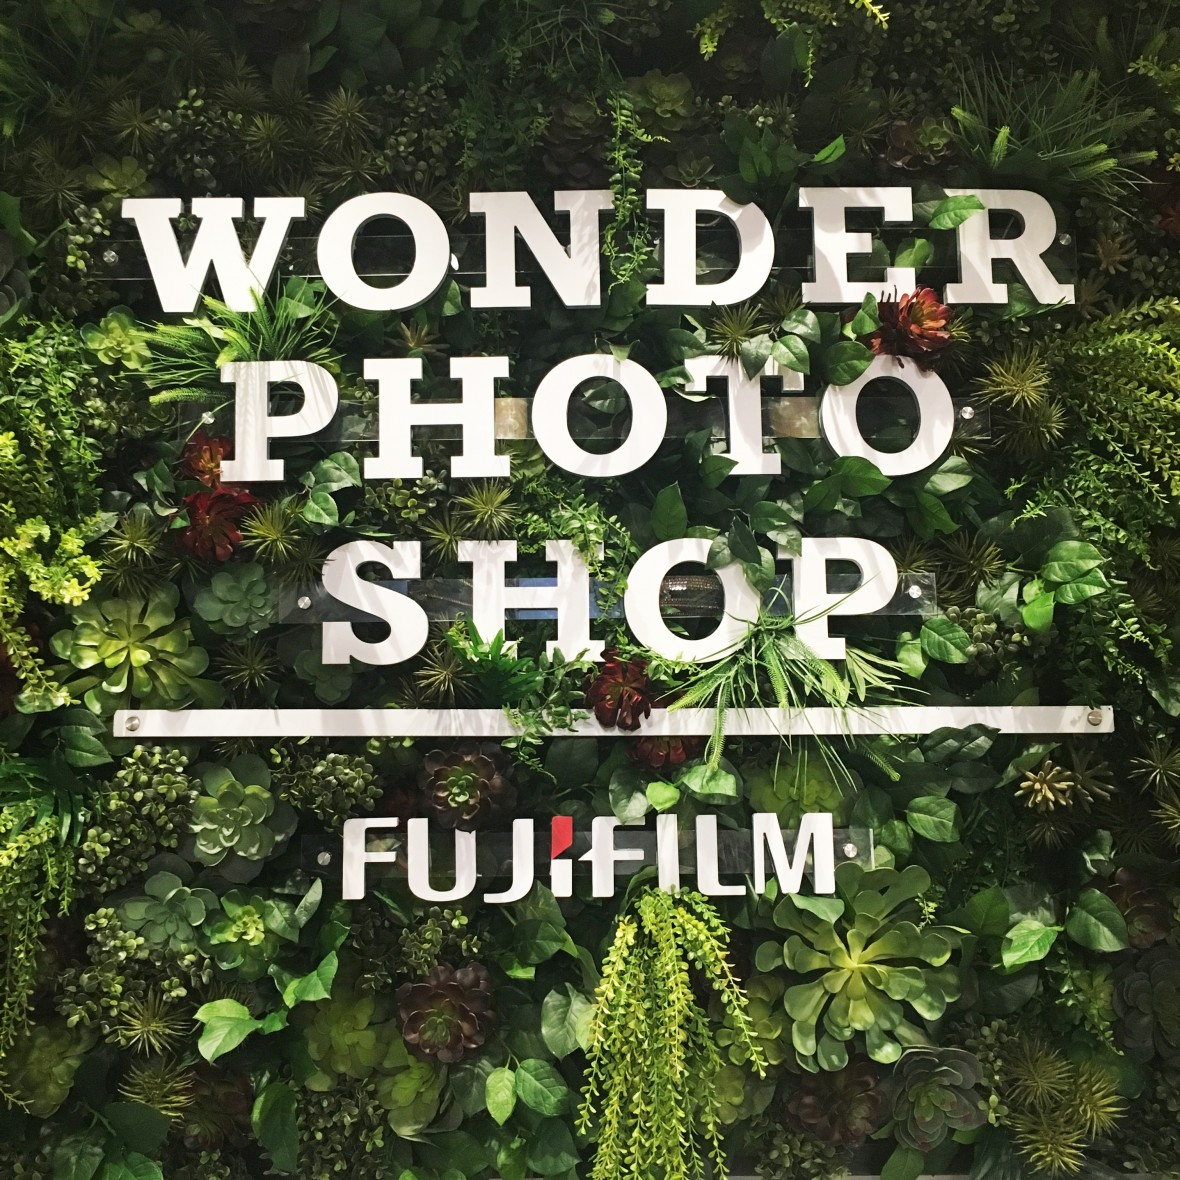 fujifilm wonder photo shop nyc